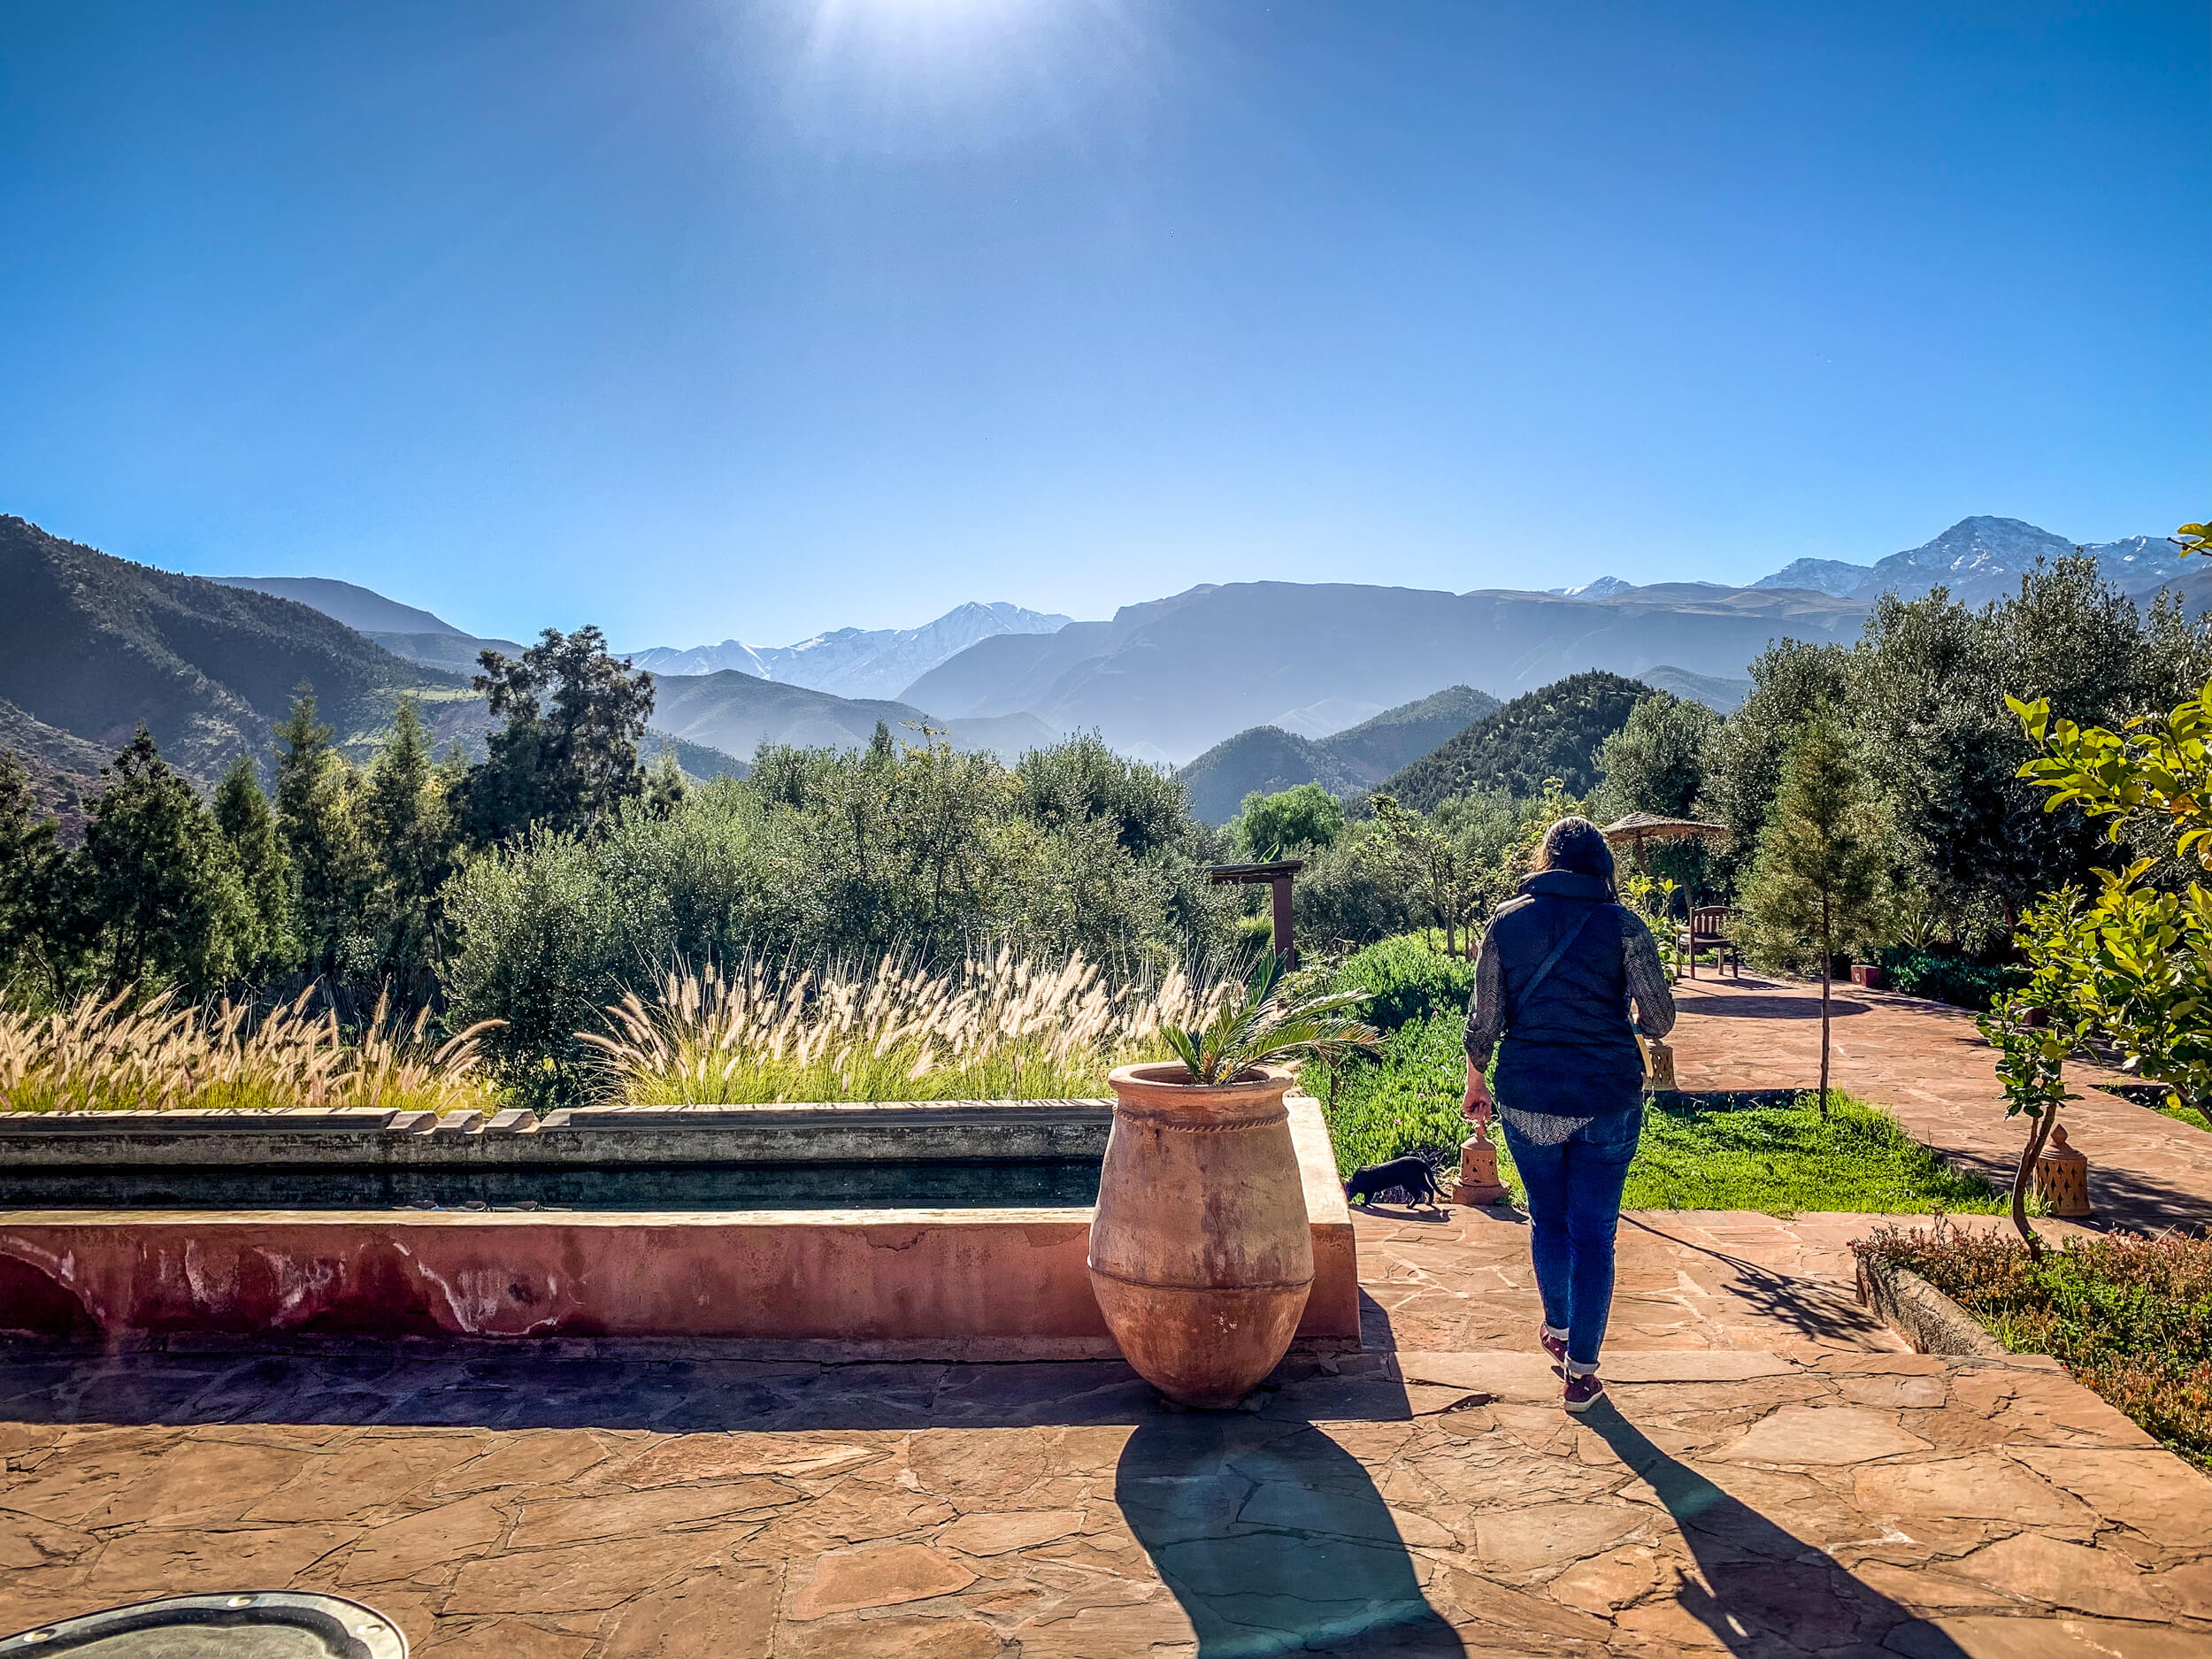 Walking the gardens of Kasbah Bab Ourika